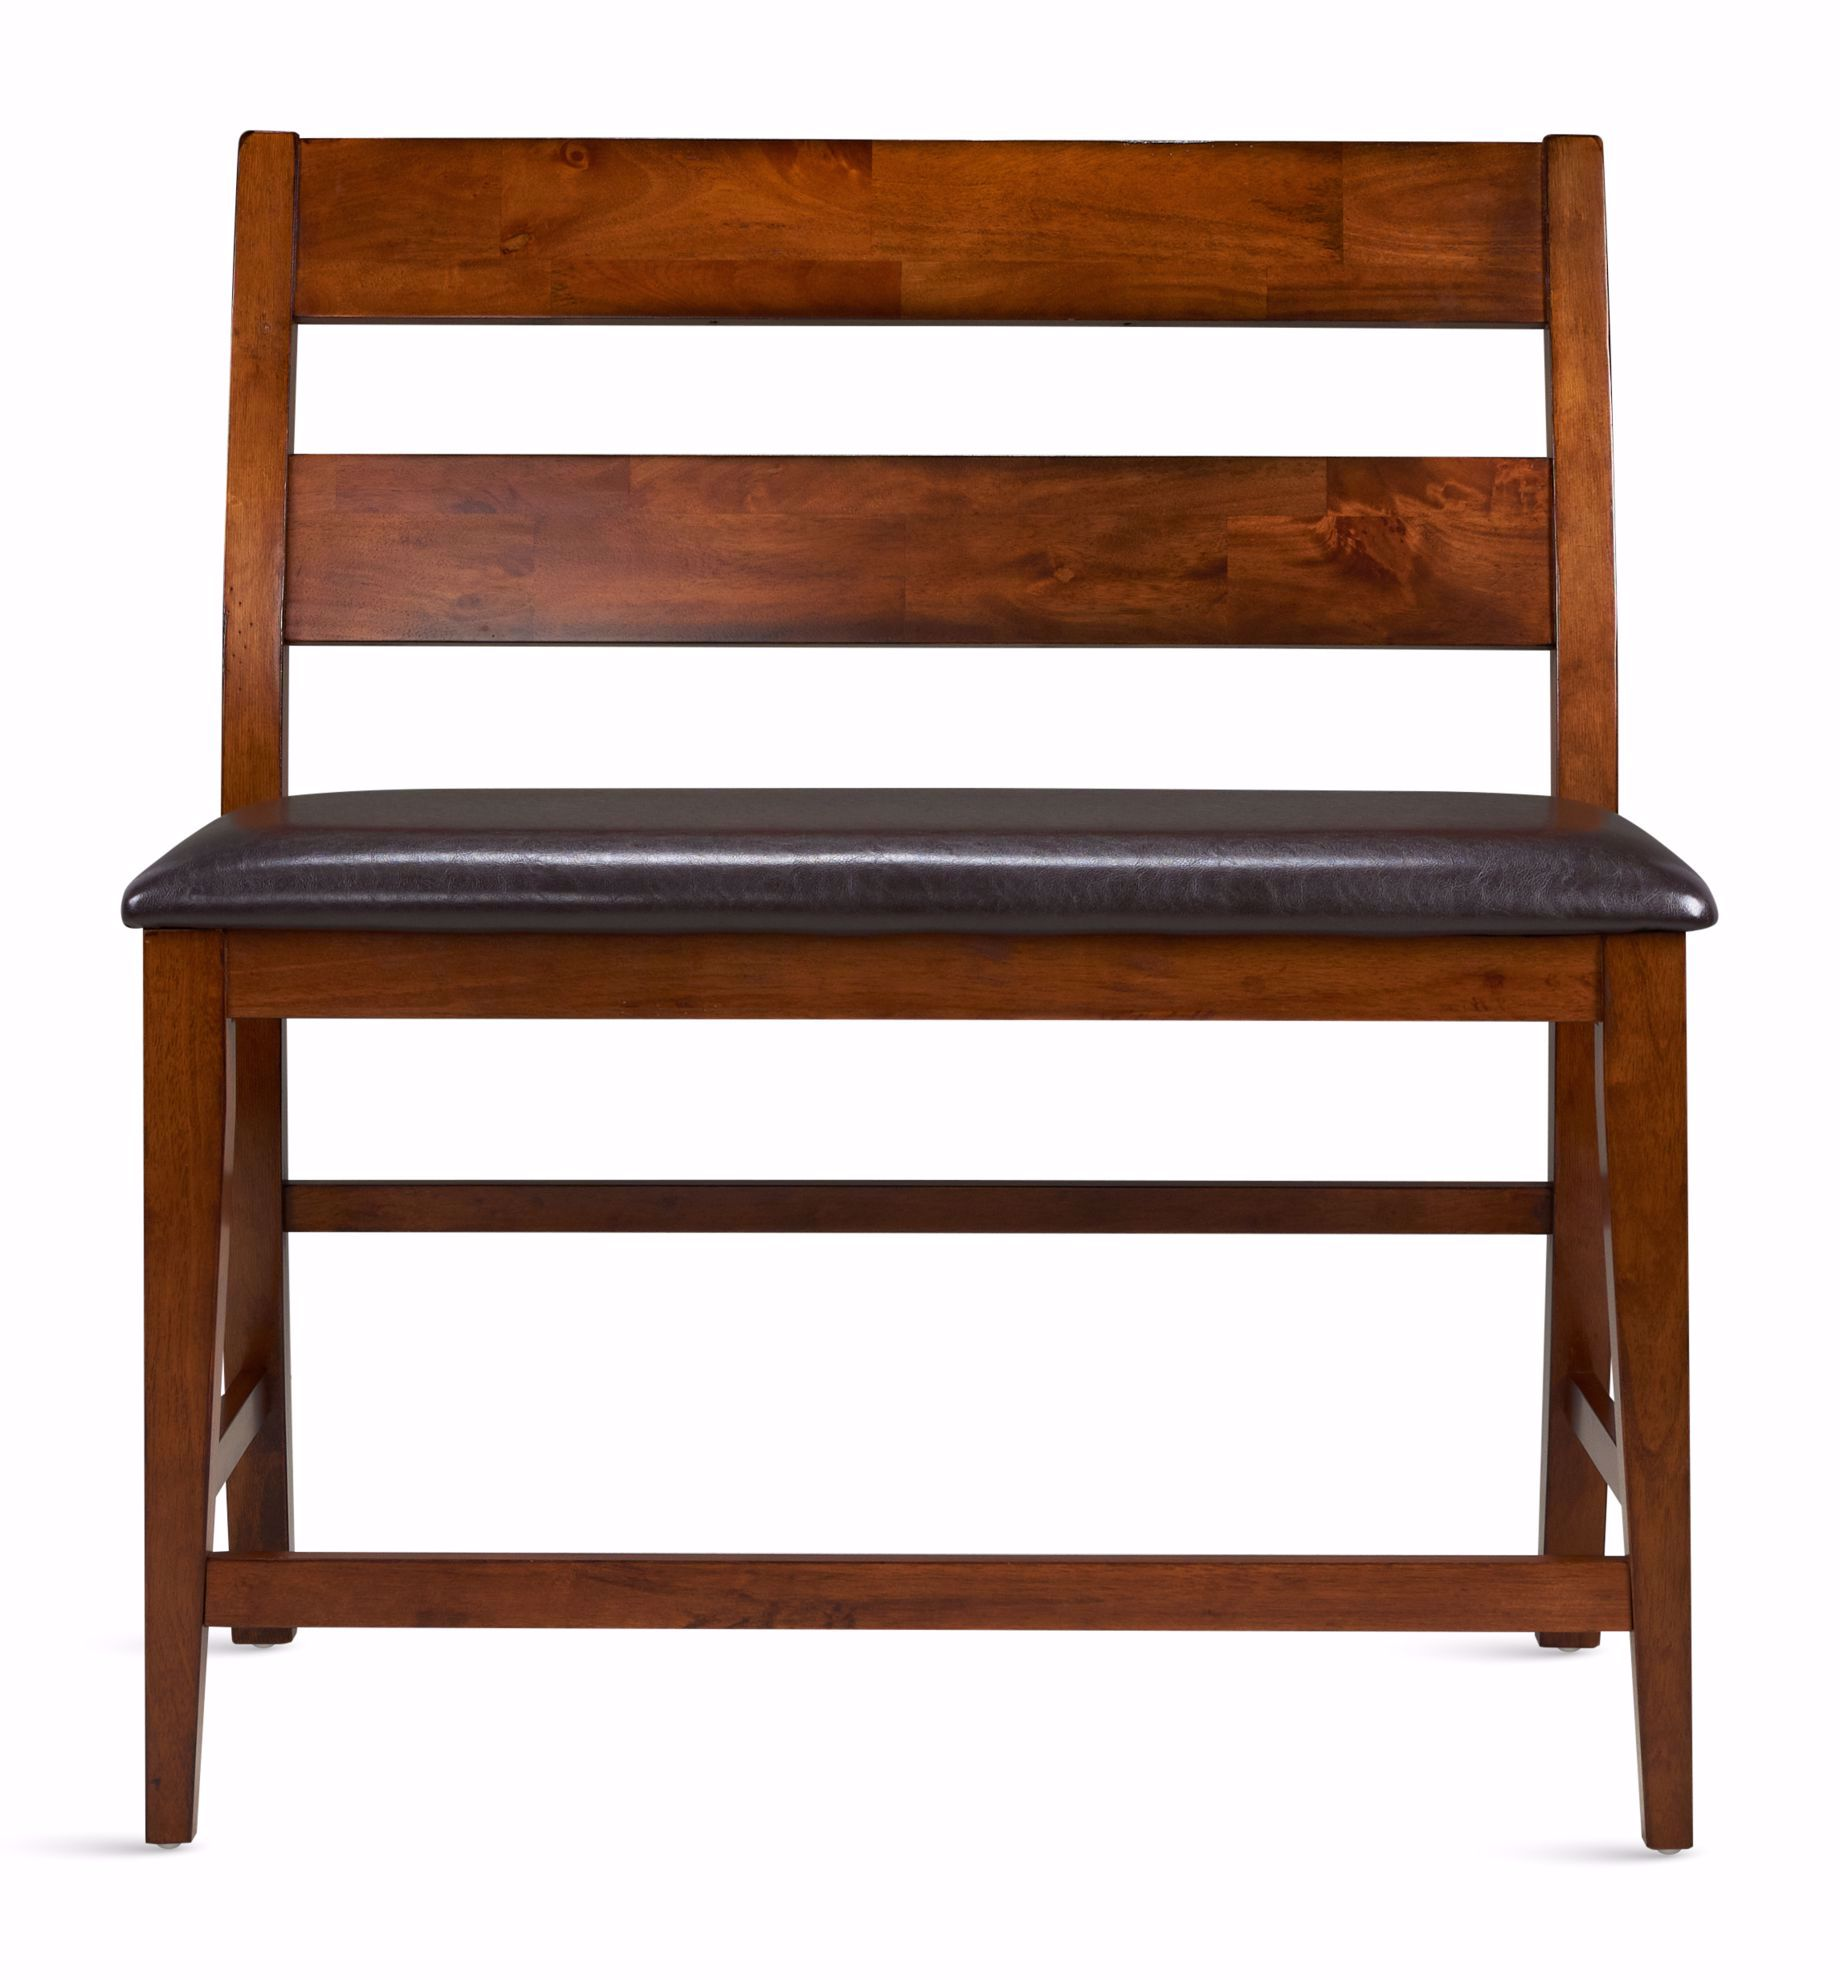 Picture of Mango Light Counter Bench